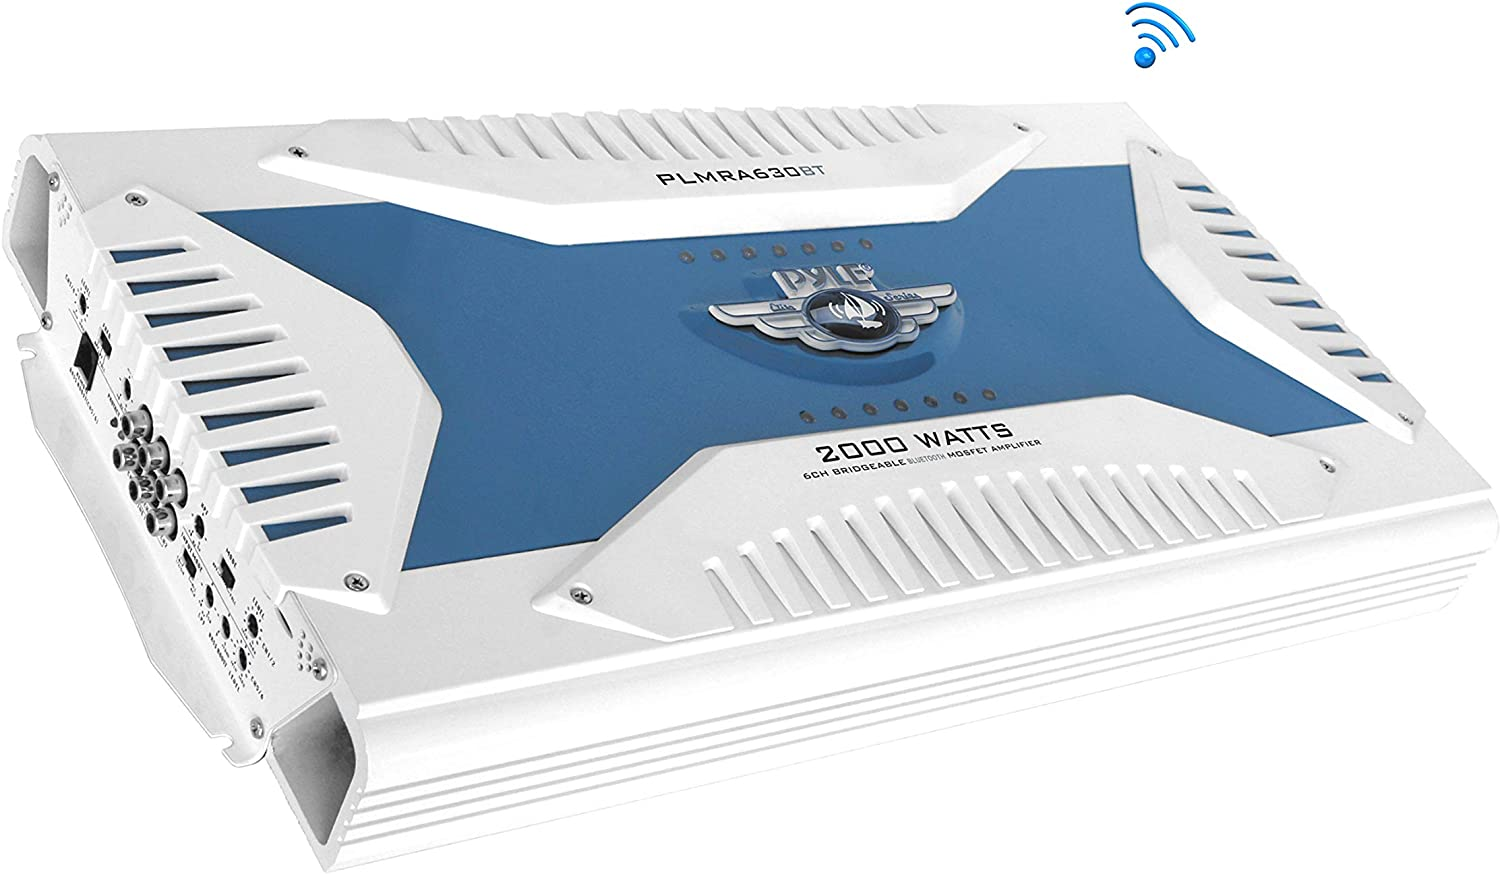 PLMRA830BT Marine Waterproof Bluetooth Amplifier Bridgeable 3000 Watt 8-Ch